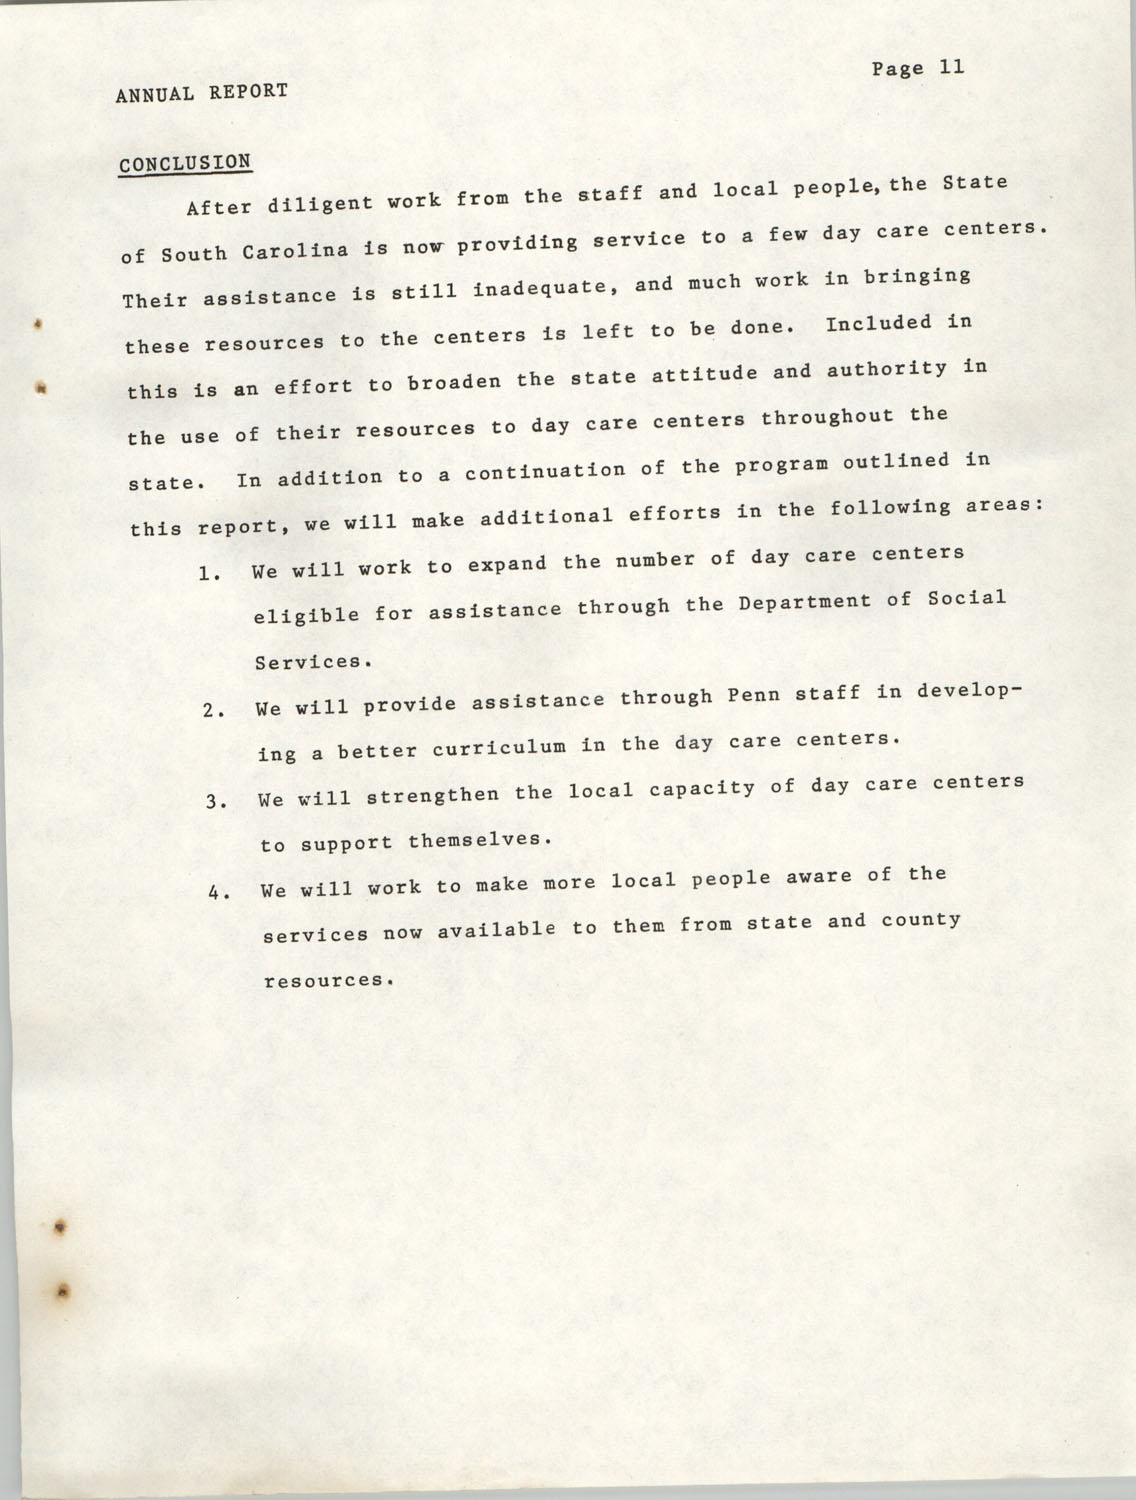 Annual Report, Penn Community Services, 1974, Page 11